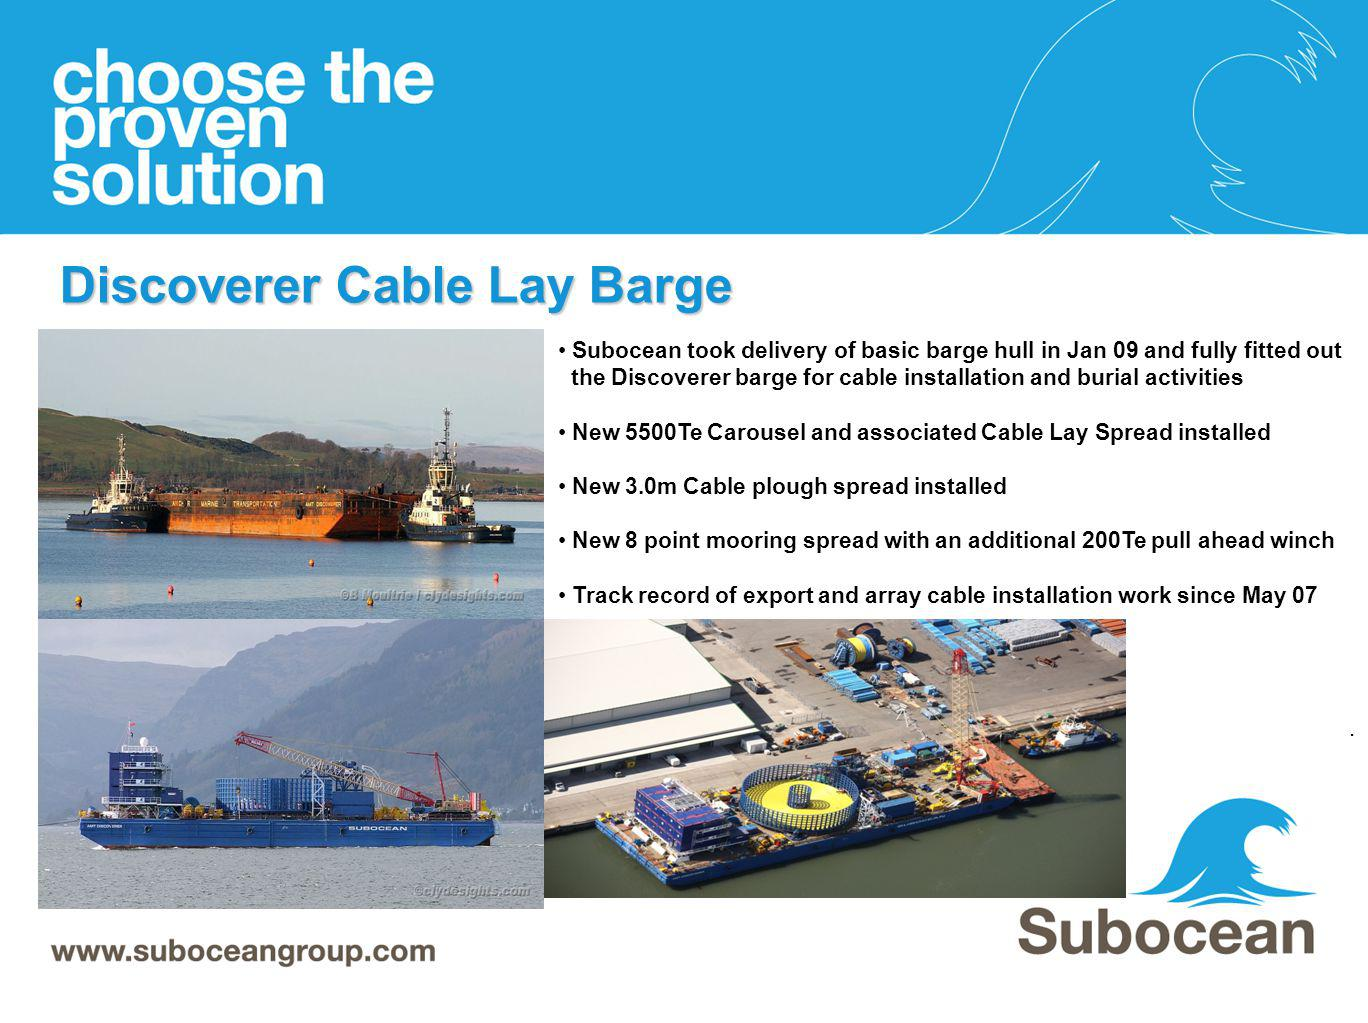 Discoverer Cable Lay Barge